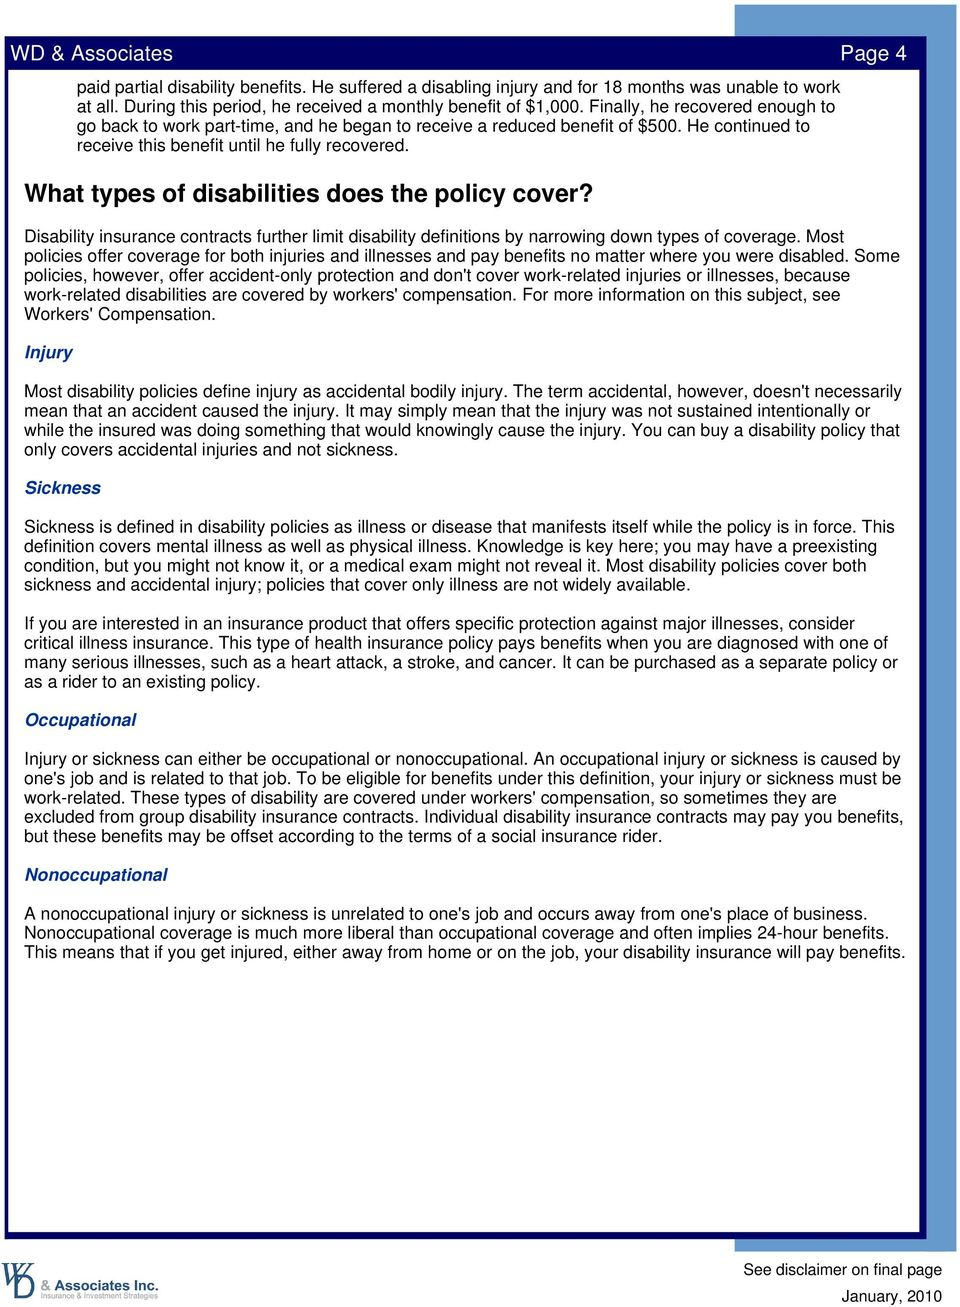 What types of disabilities does the policy cover? Disability insurance contracts further limit disability definitions by narrowing down types of coverage.